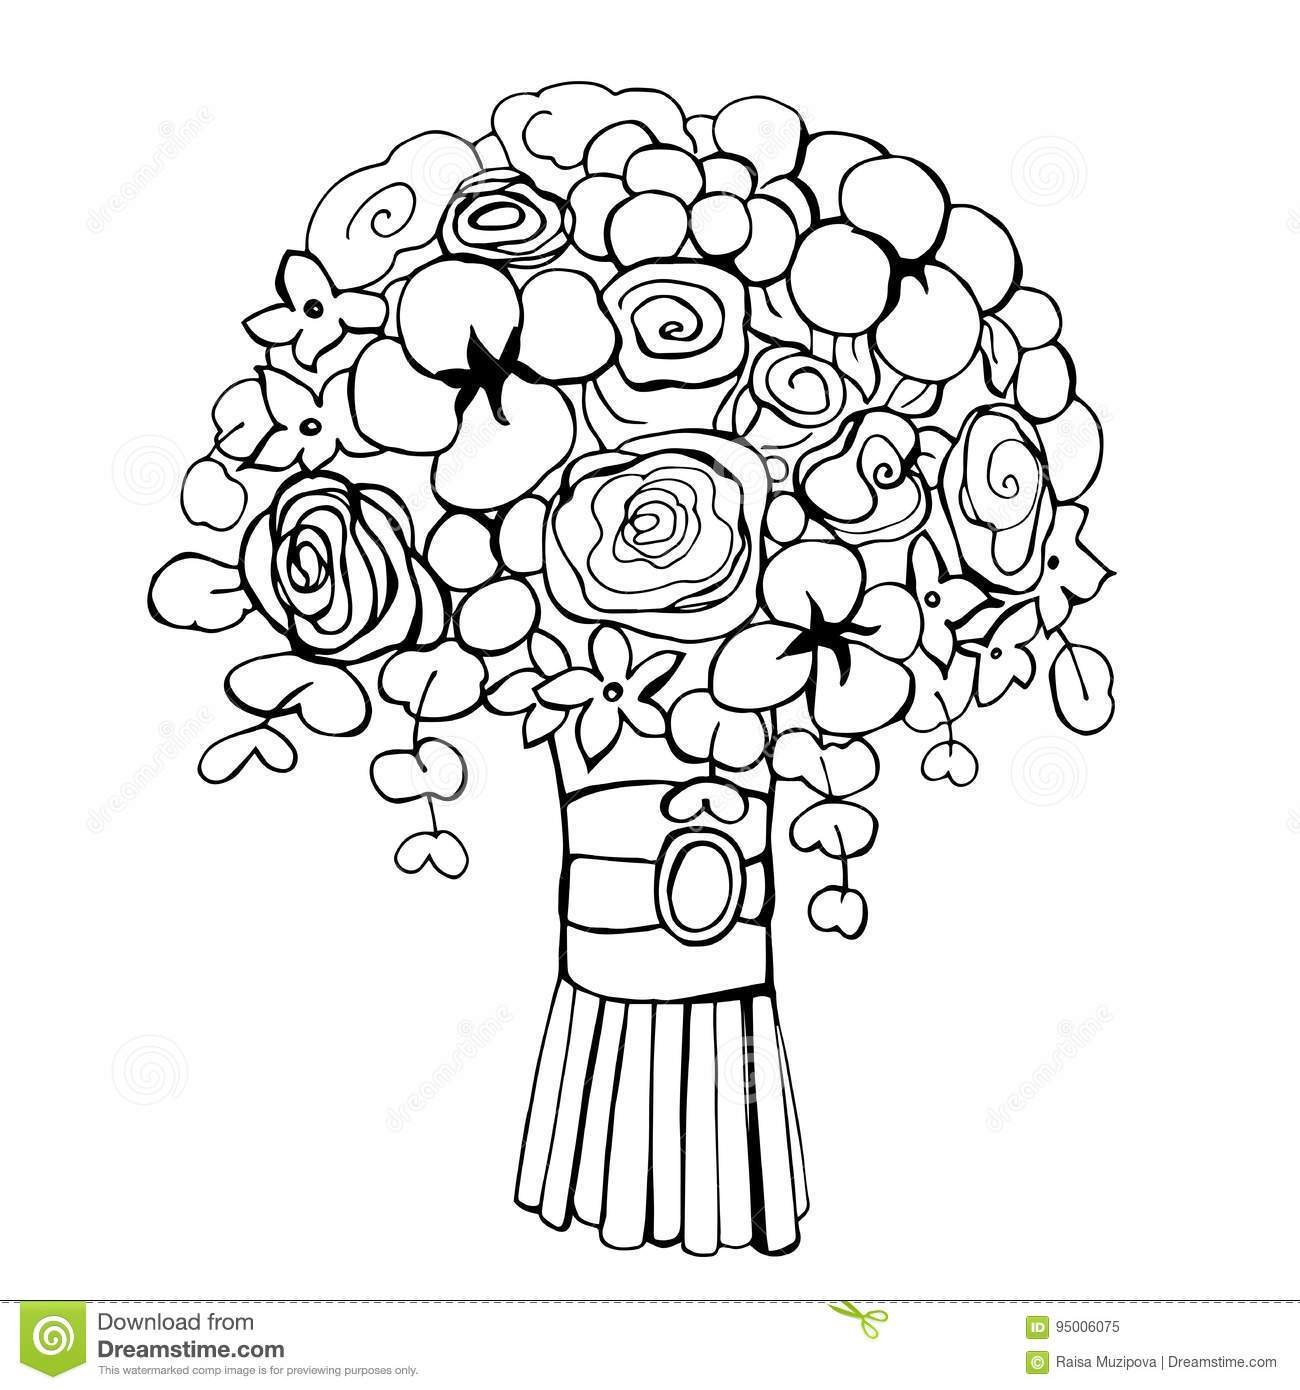 Black and white wedding flower clipart k and r vector download Wedding bouquet clipart black and white 3 » Clipart Portal vector download